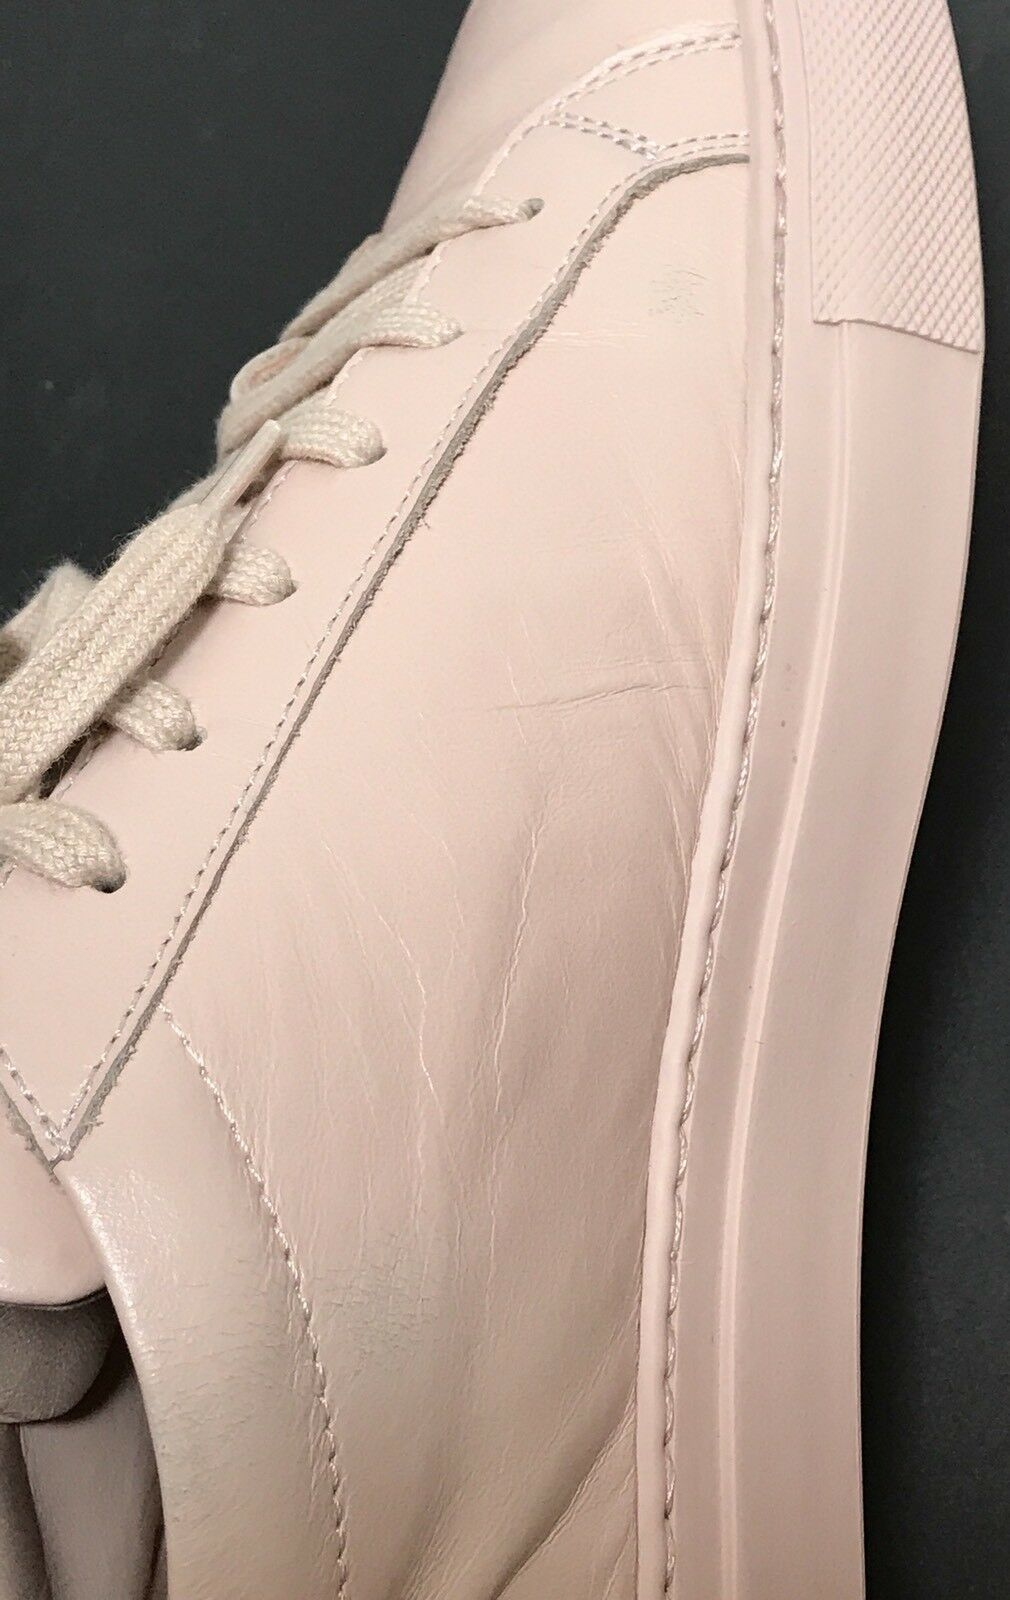 Common projects Original Aquiles Talla zapatilla de deporte azulsh Cuero Talla Aquiles 41EU 11US 3643a6